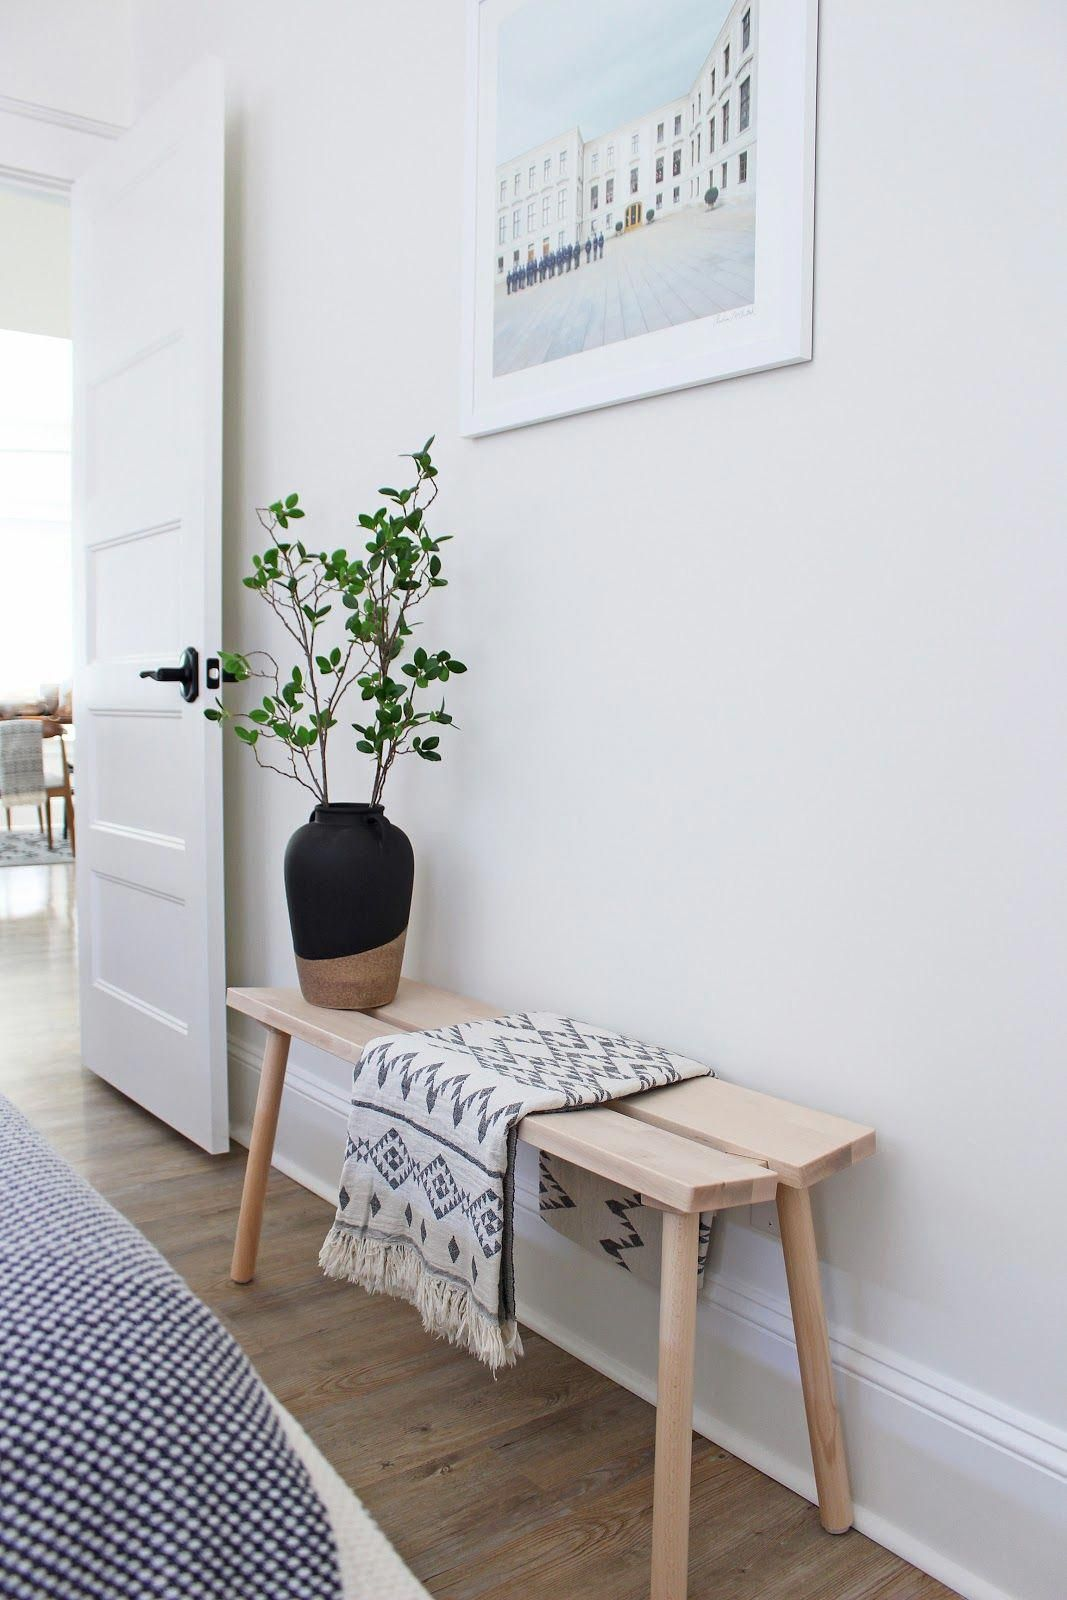 H M Home Half Dipped Stoneware Vase With Handles Turkish Cotton Throw Ikea Ypperlig Bench Scandi Scandinavian Style Home Bedroom Furniture Design Home Decor